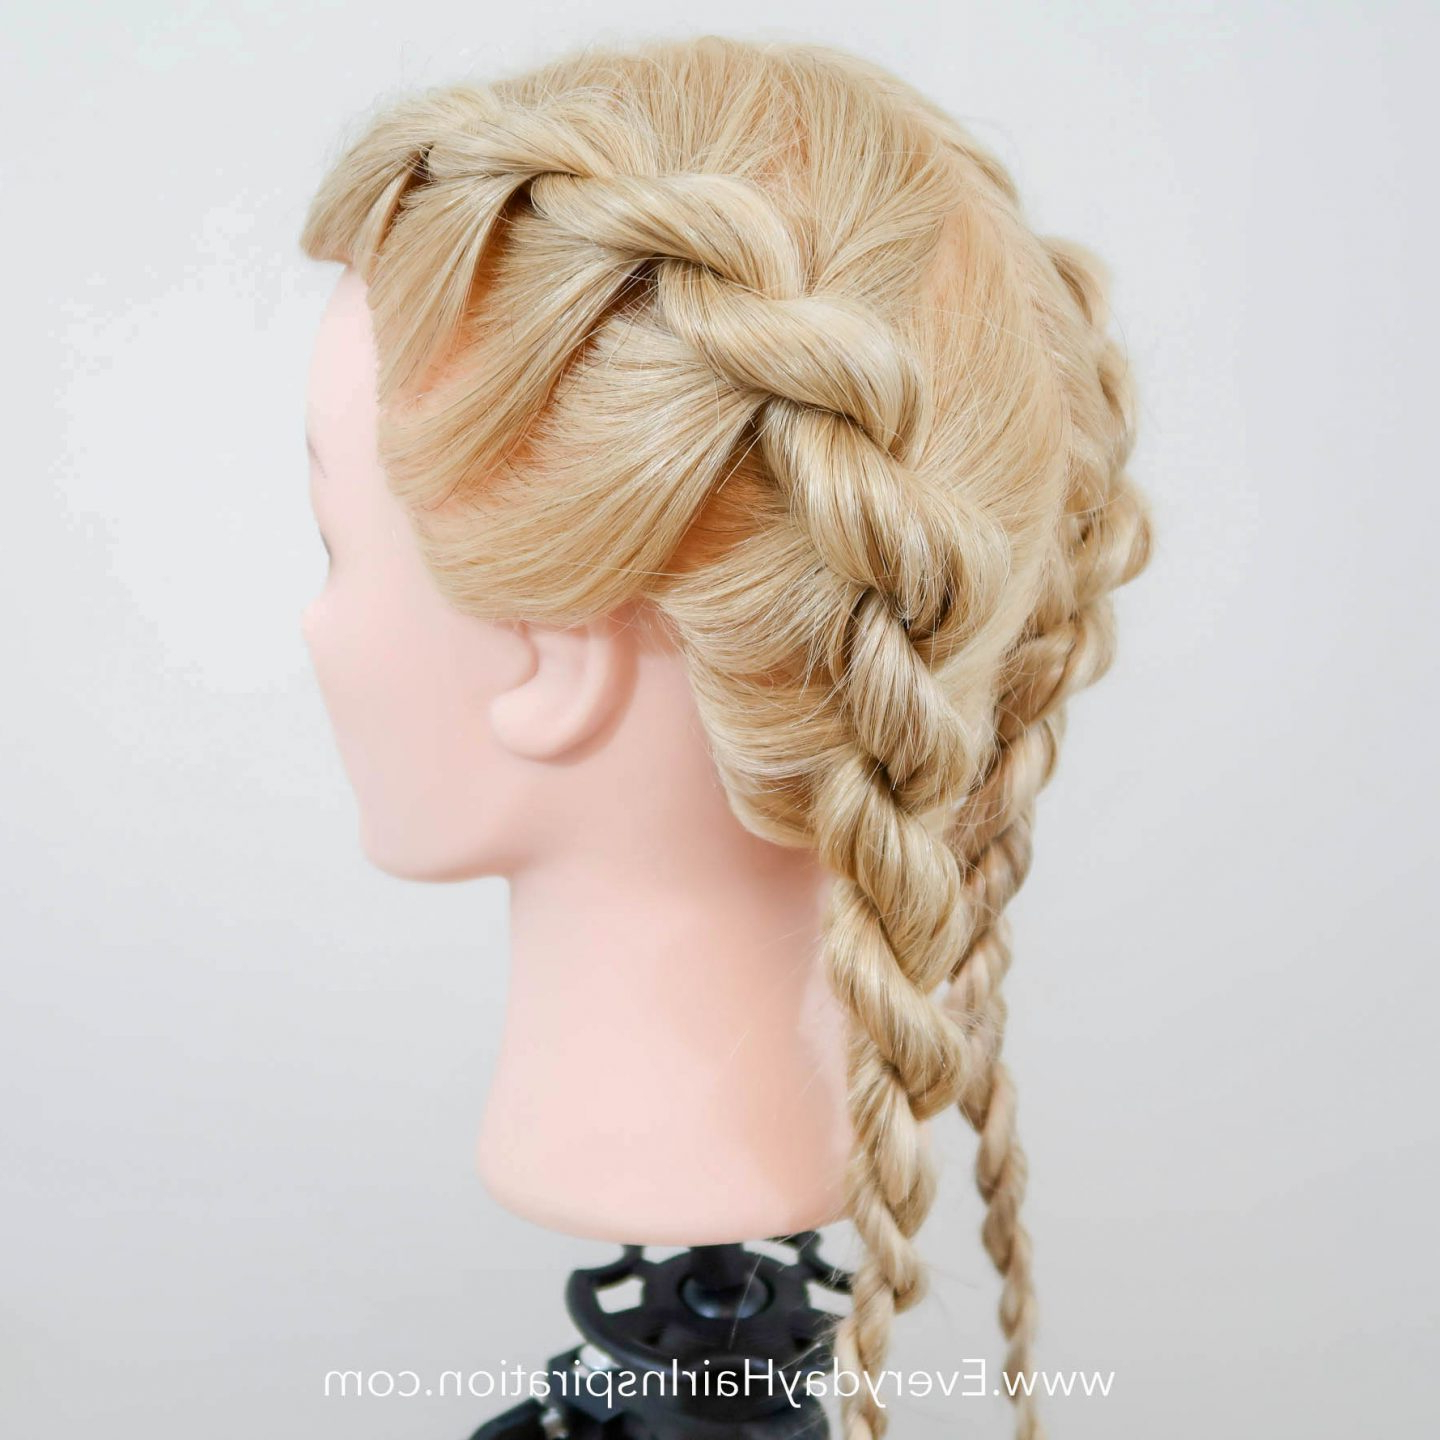 2020 Rope And Fishtail Braid Hairstyles Inside French Rope Braid Stepstep – Everyday Hair Inspiration (View 10 of 20)